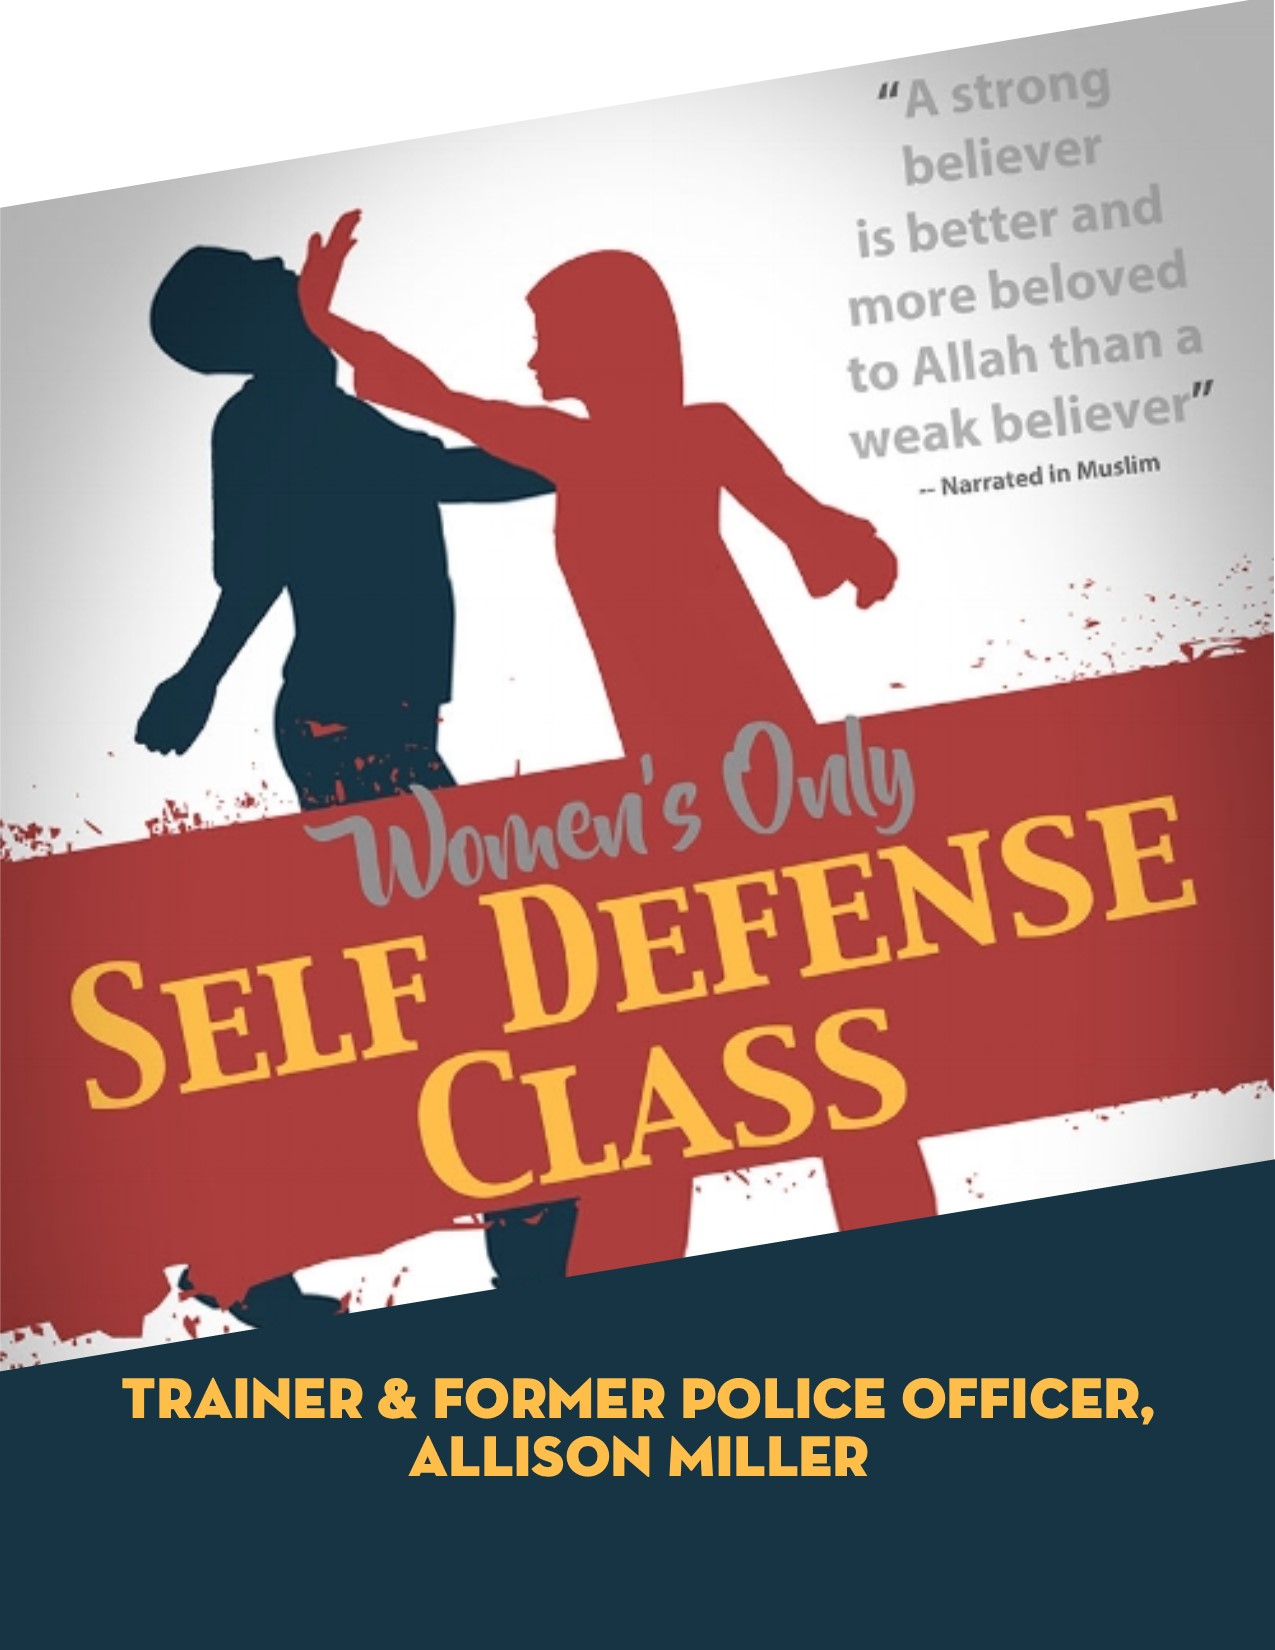 Generic Muslim Women Self Defense Flyer